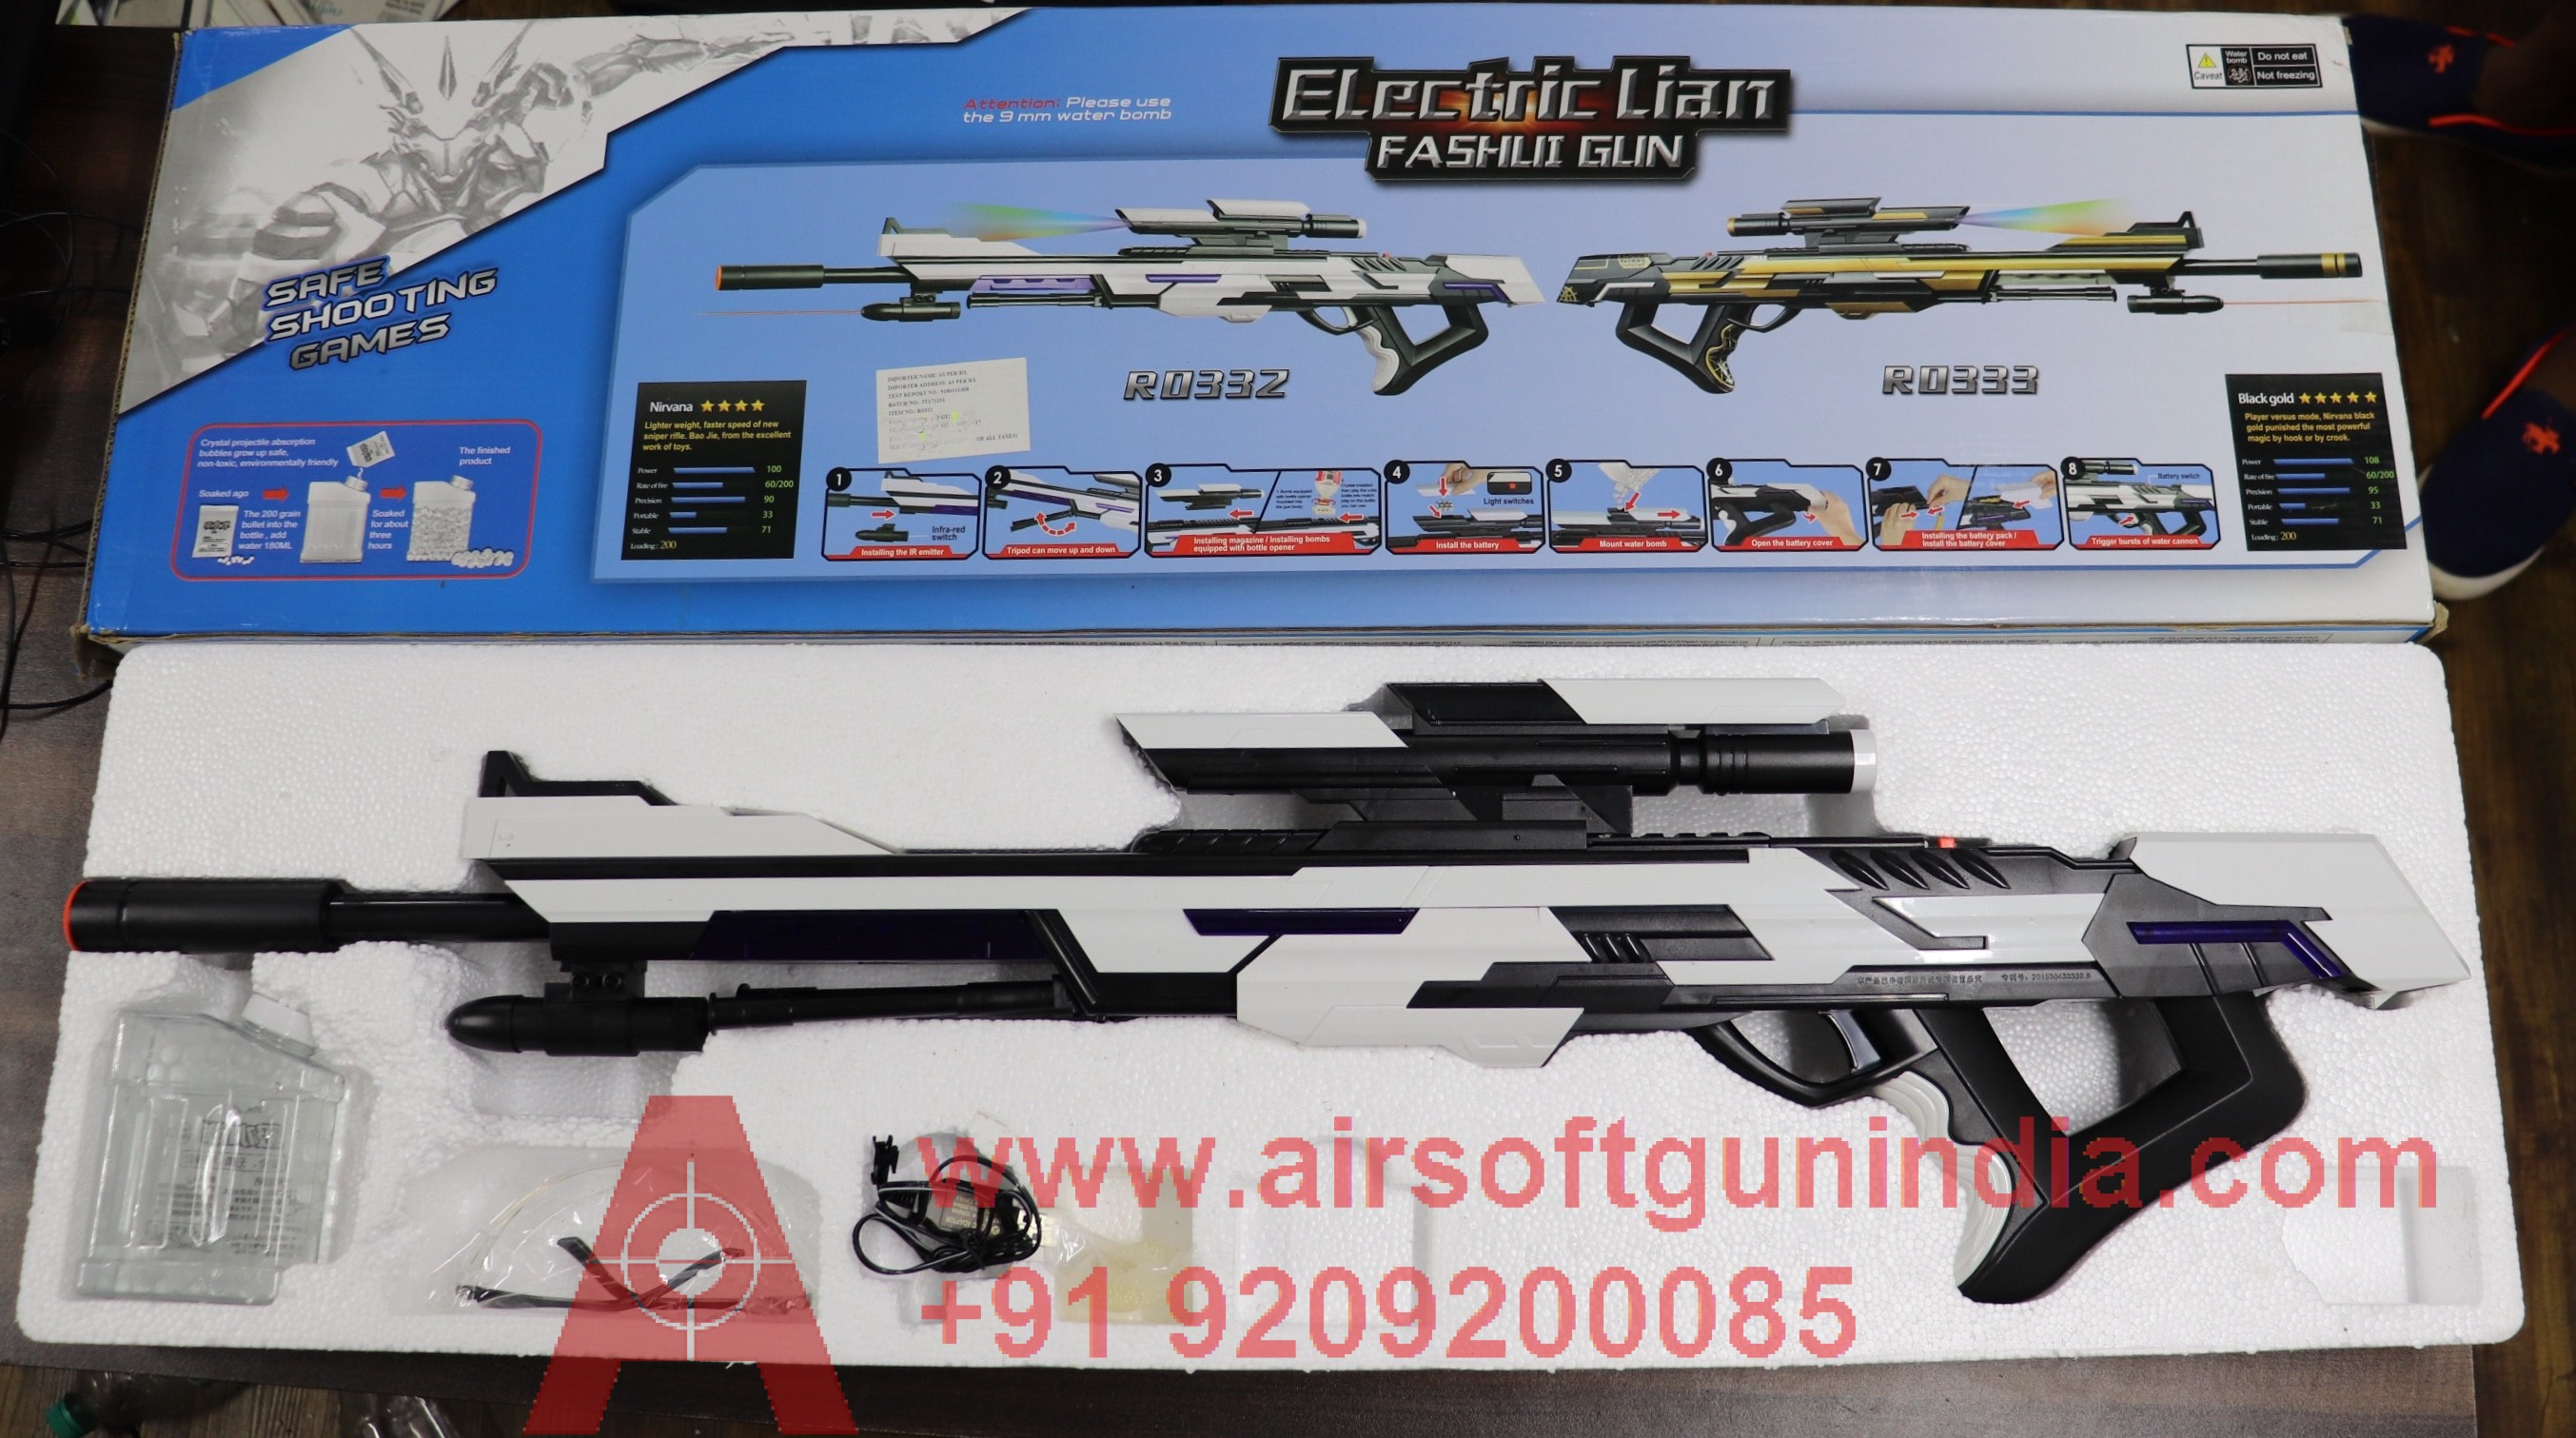 ELECTRIC AUTOMATIC GEL BLASTER RIFLE BY AIRSOFT GUN INDIA